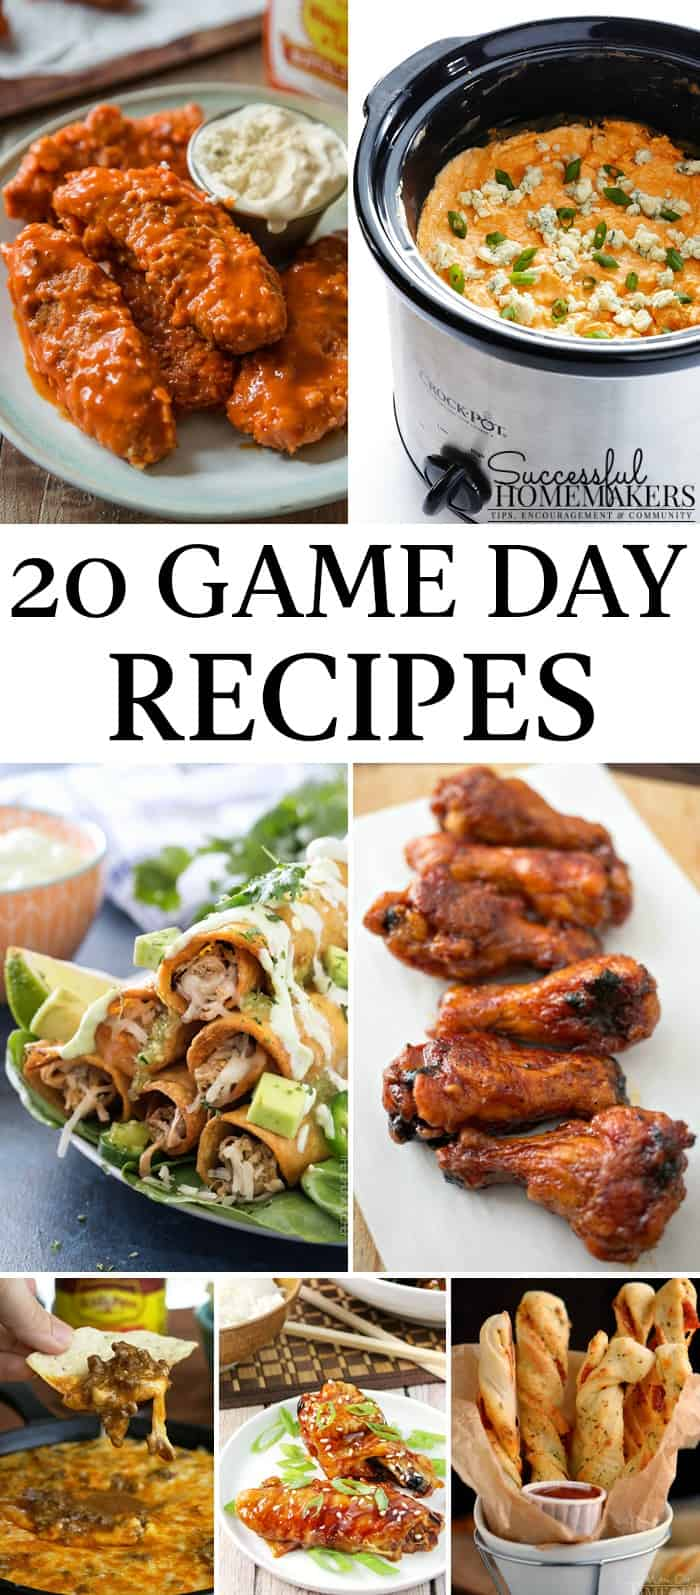 20 game day recipes for you to make!